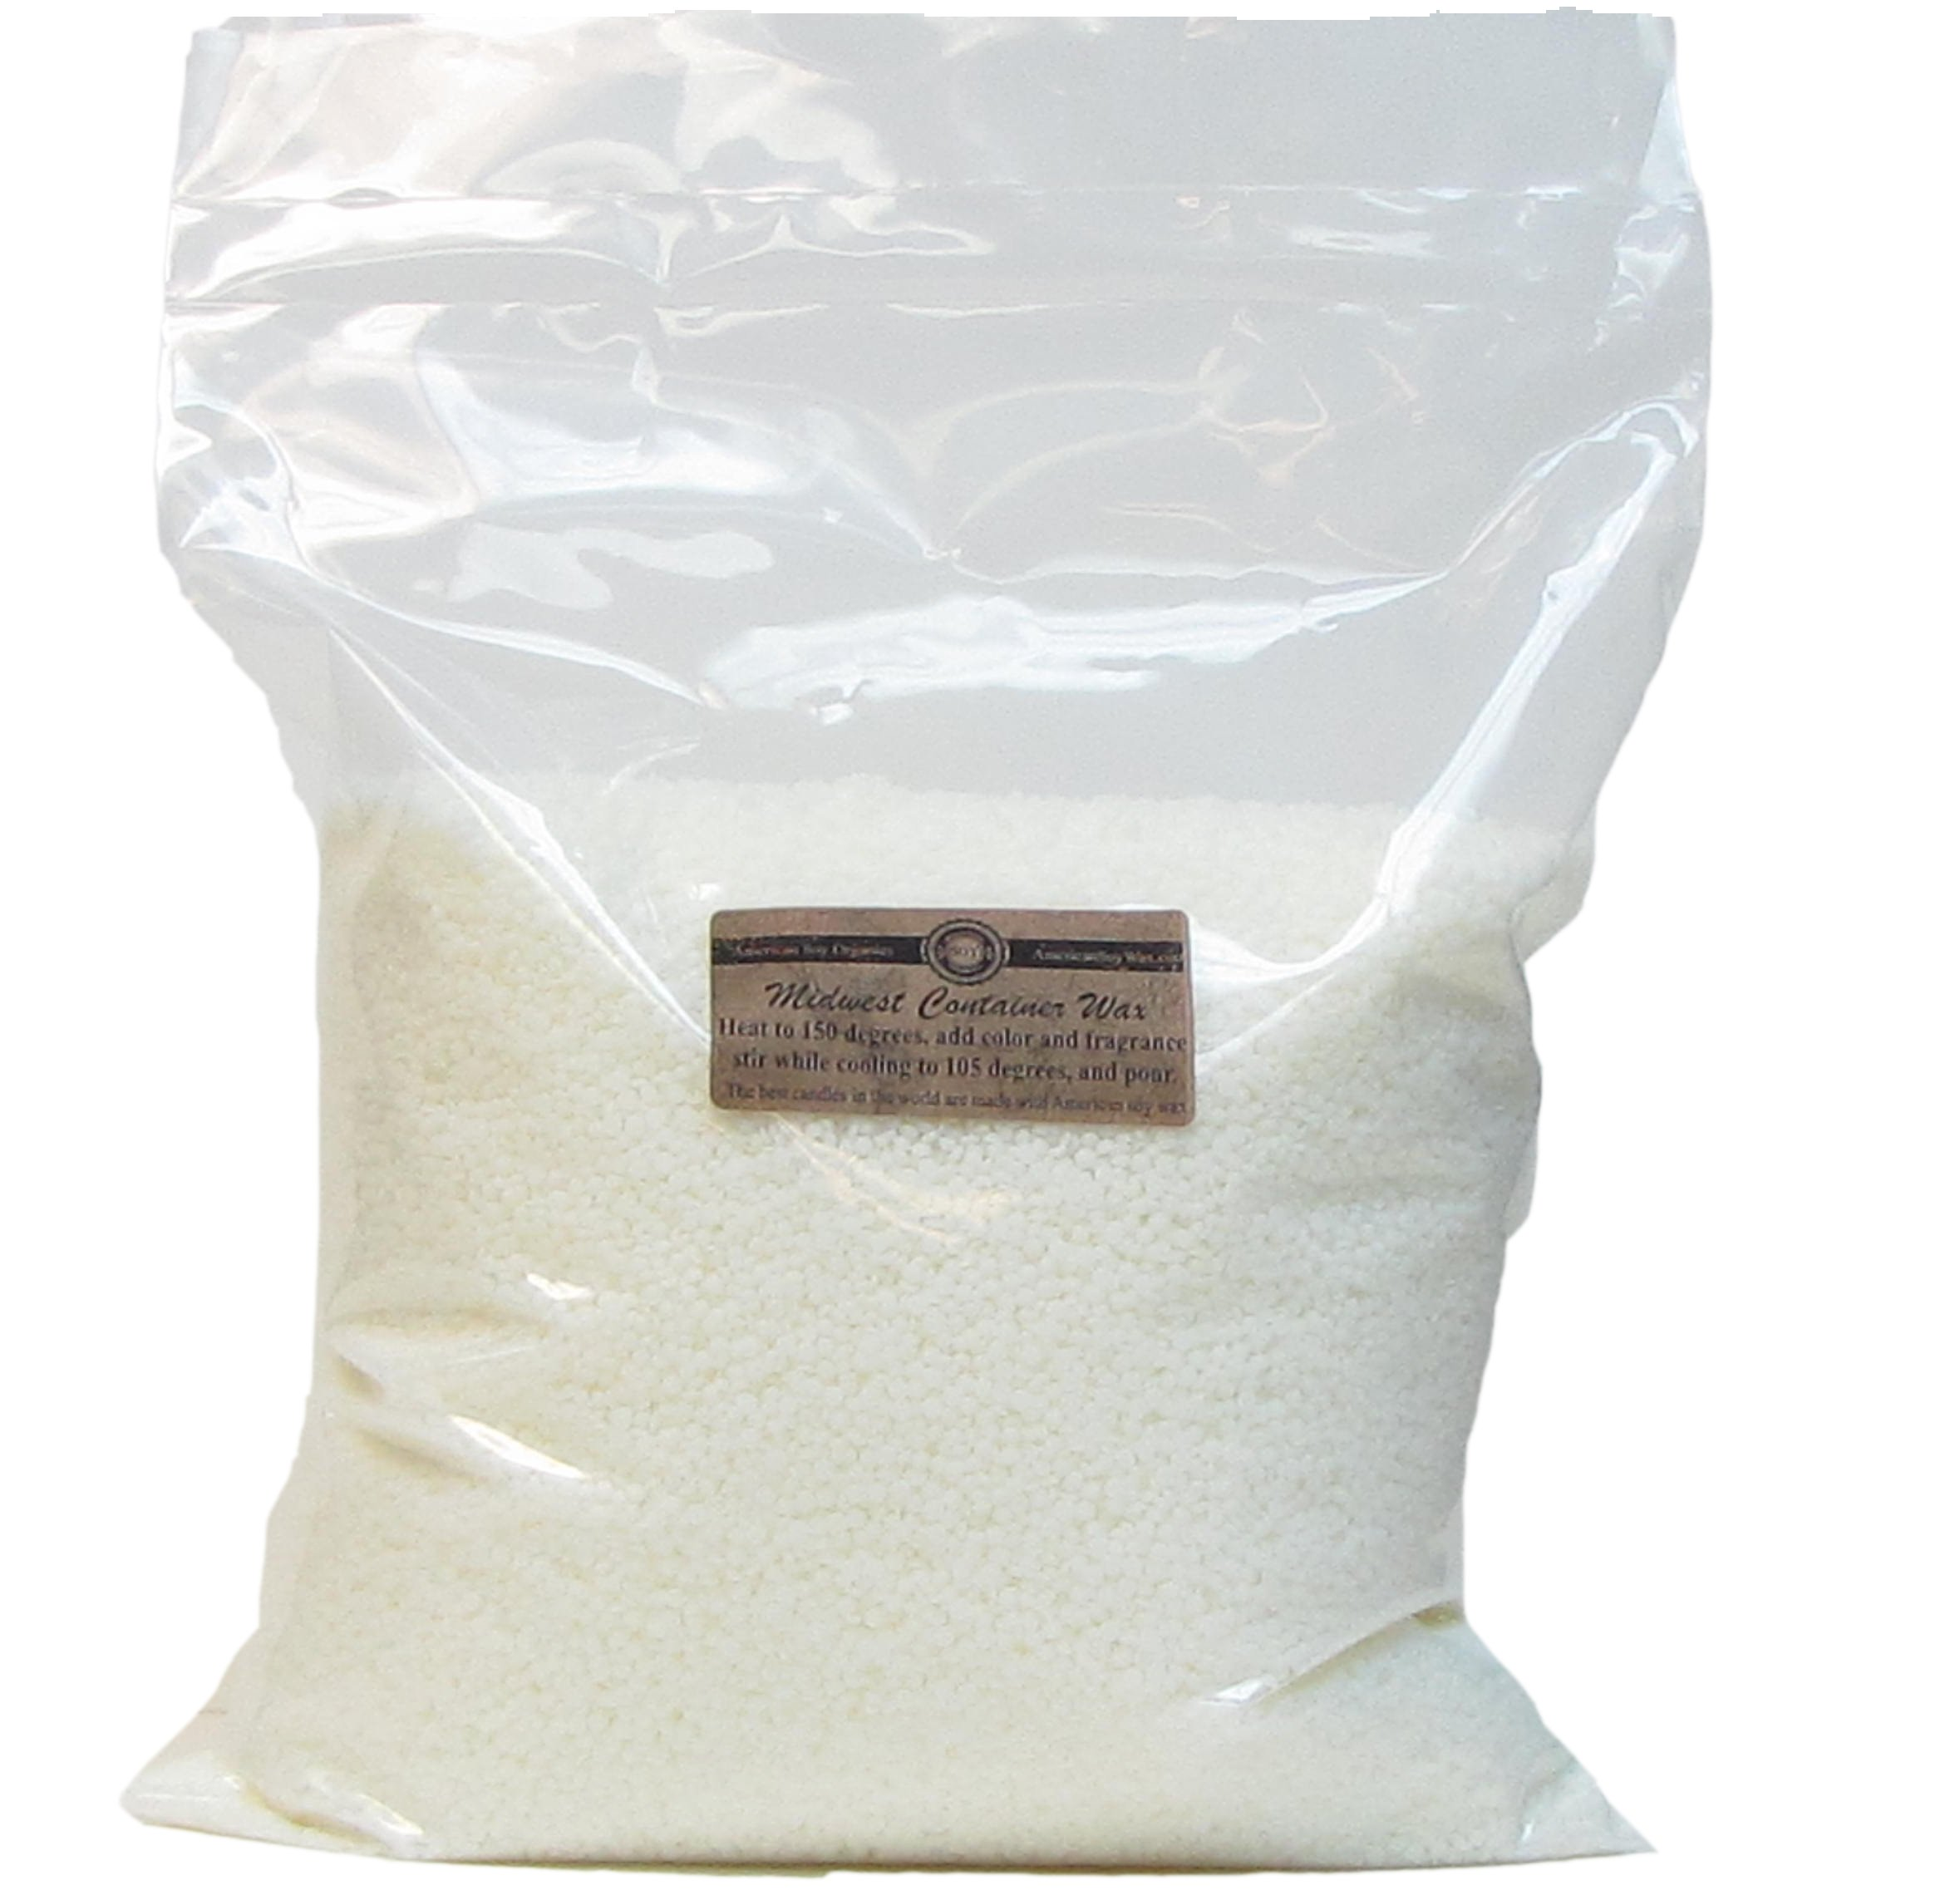 American Soy Organics Midwest Container Soy Wax: 10 lb Bag of Candle Wax for Candle Making by American Soy Organics